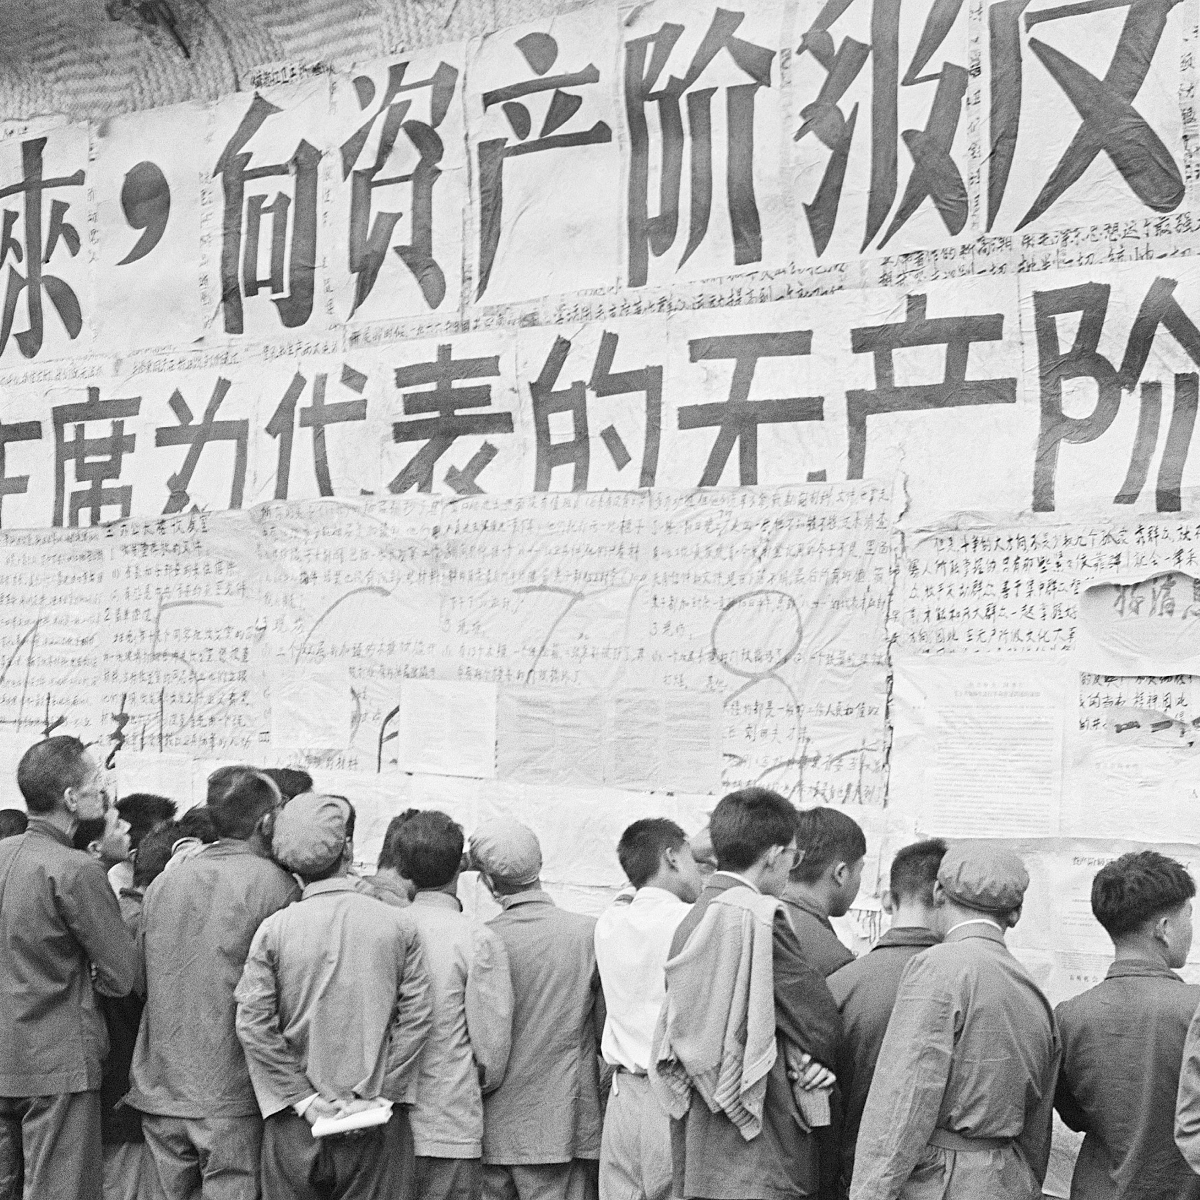 communist victory in the chinese civil Communist victory in china 1949 scholarly search cold war revolution: soviet-american rivalry and the origins of the chinese civil war communistvictoryin.